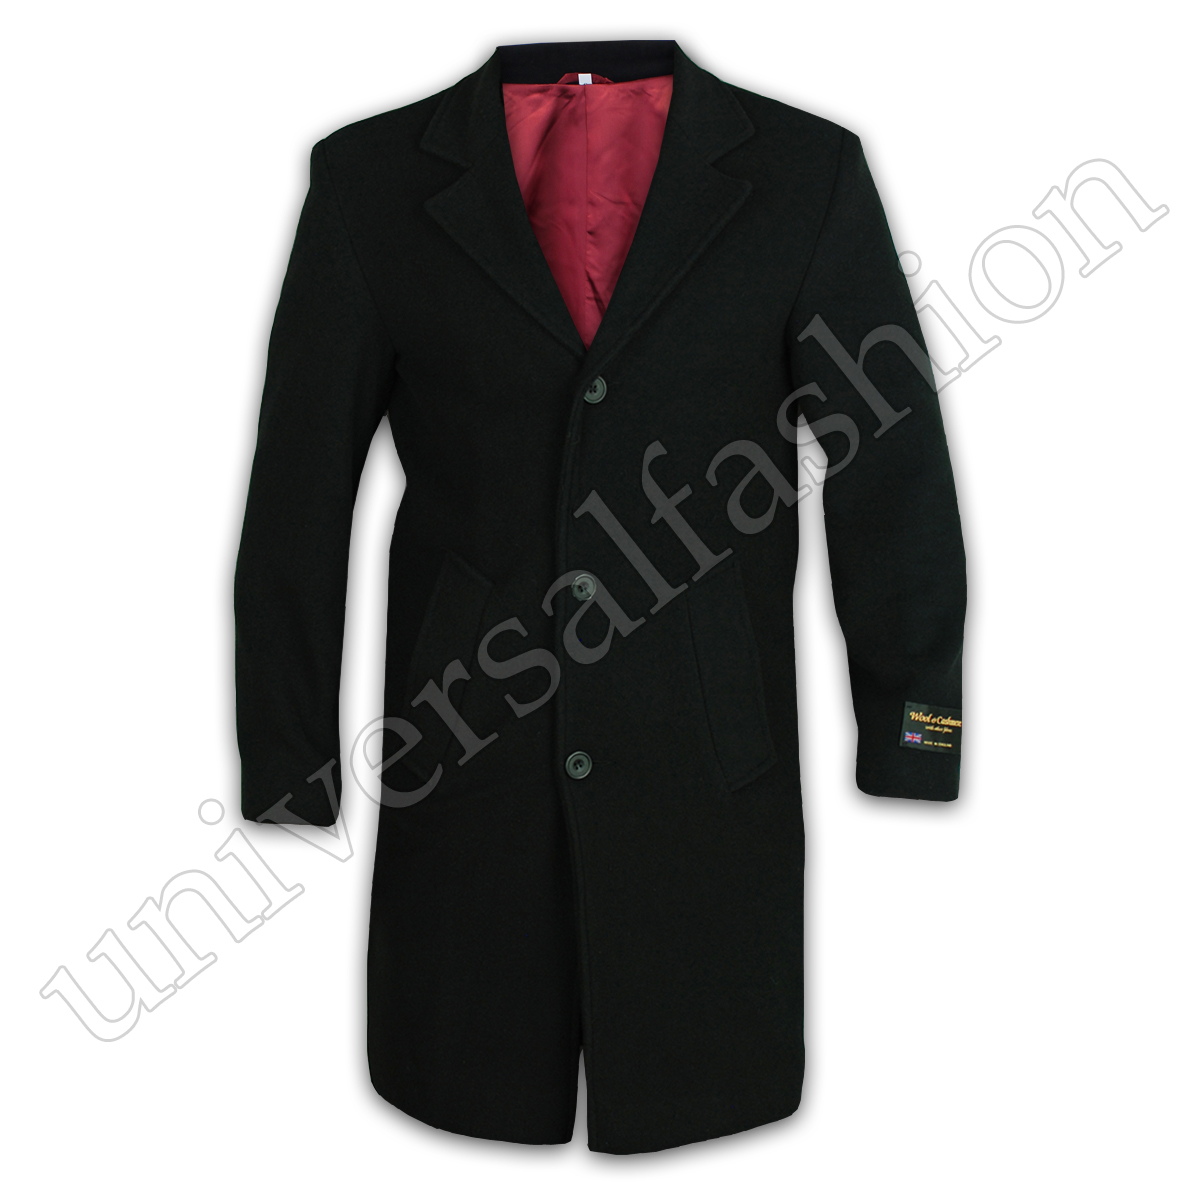 Mens-Wool-Cashmere-Coat-Jacket-Outerwear-Trench-Overcoat-Warm-Winter-Lined-New thumbnail 2